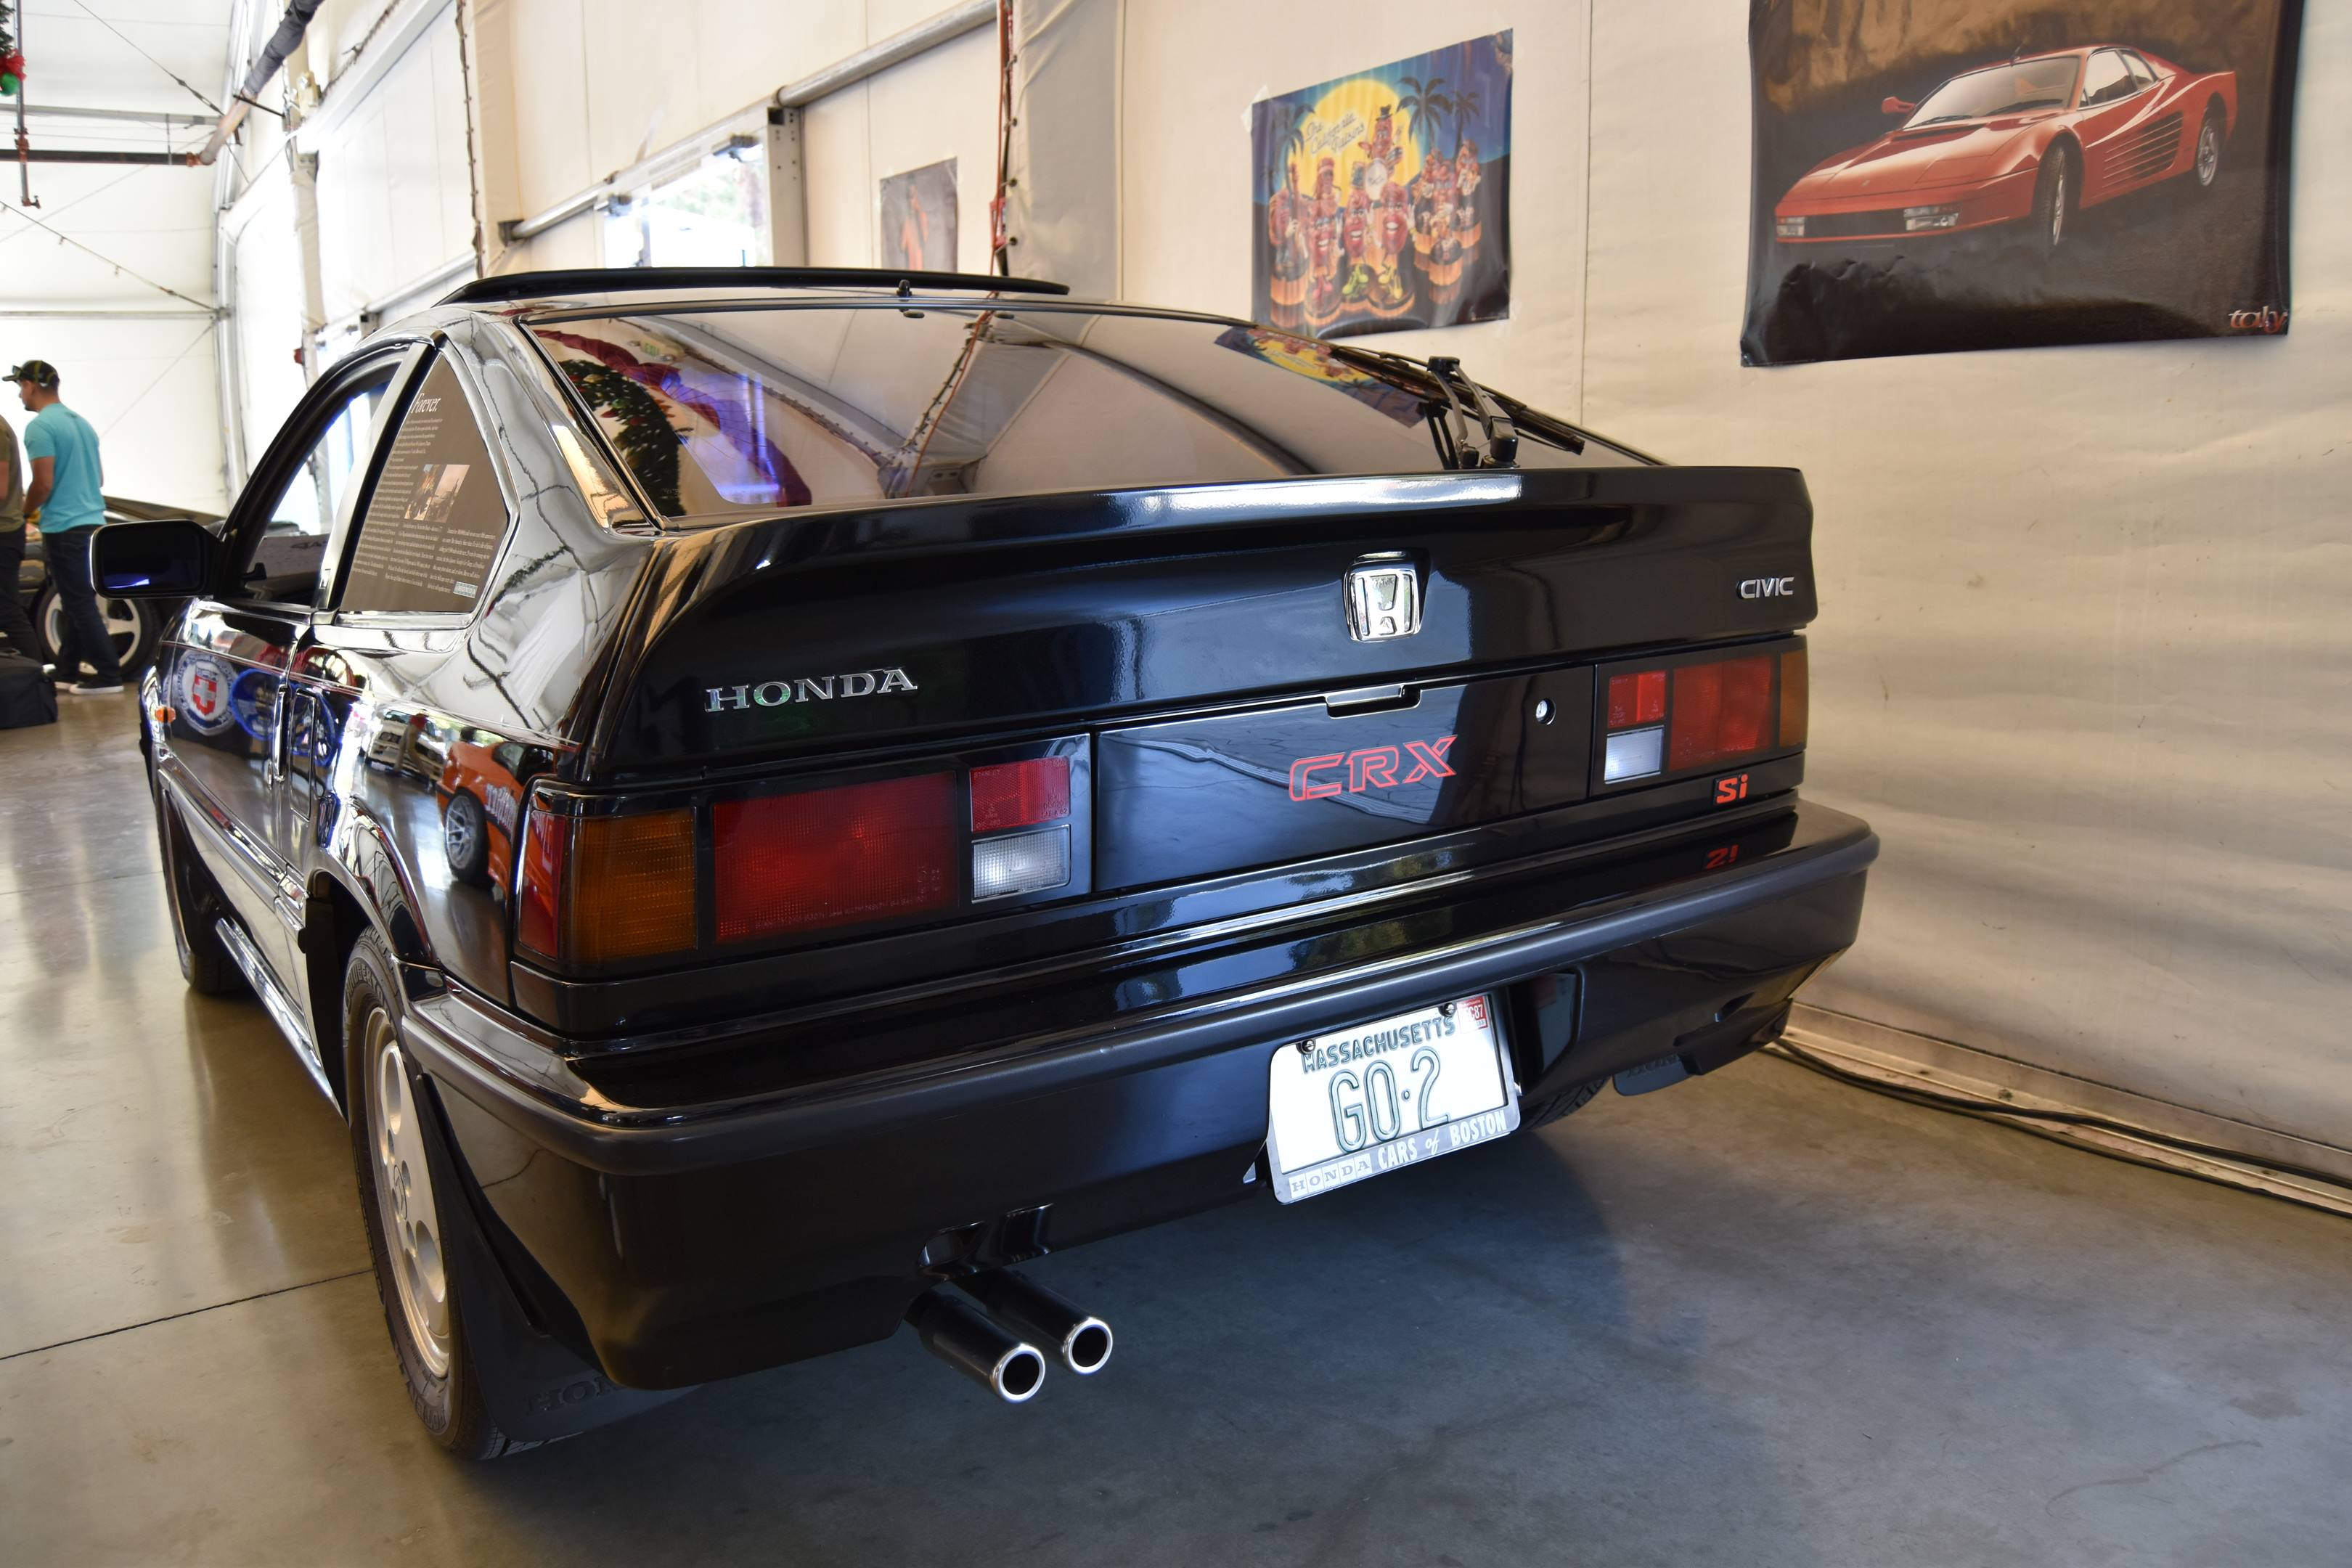 1987 Honda Civic CRX Si rear